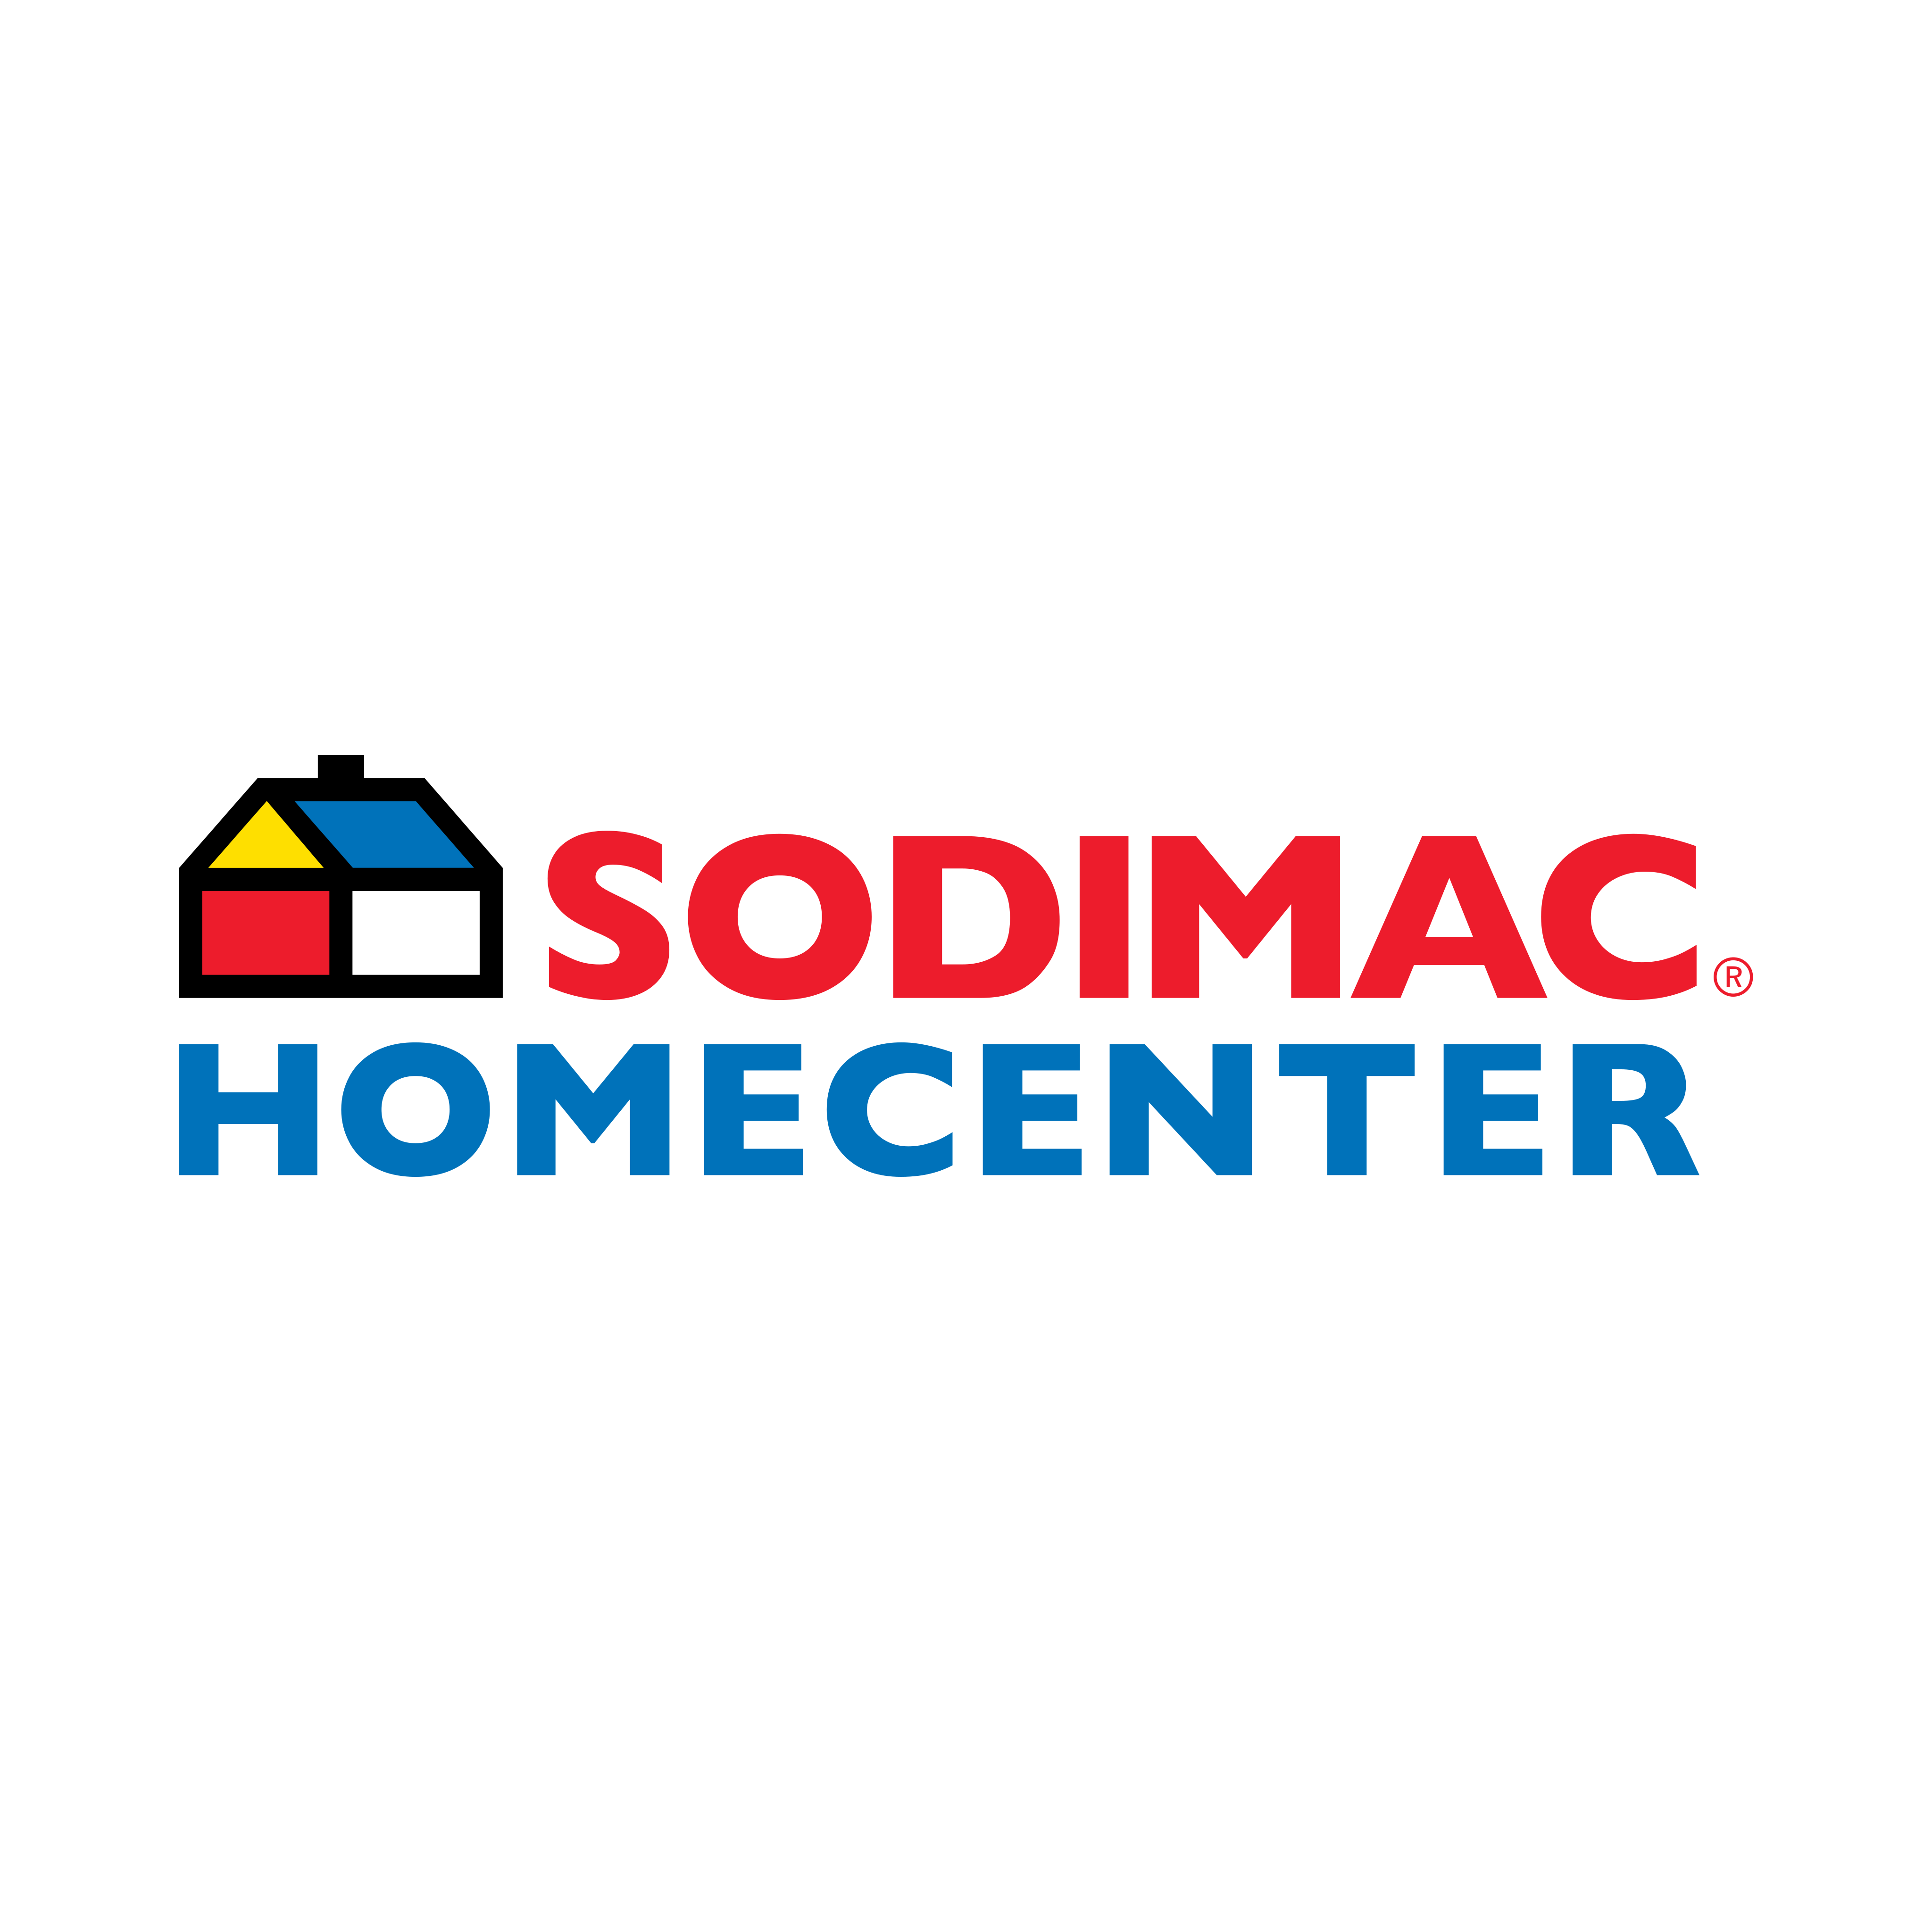 sodimac homecenter logo 0 - Sodimac HomeCenter Logo